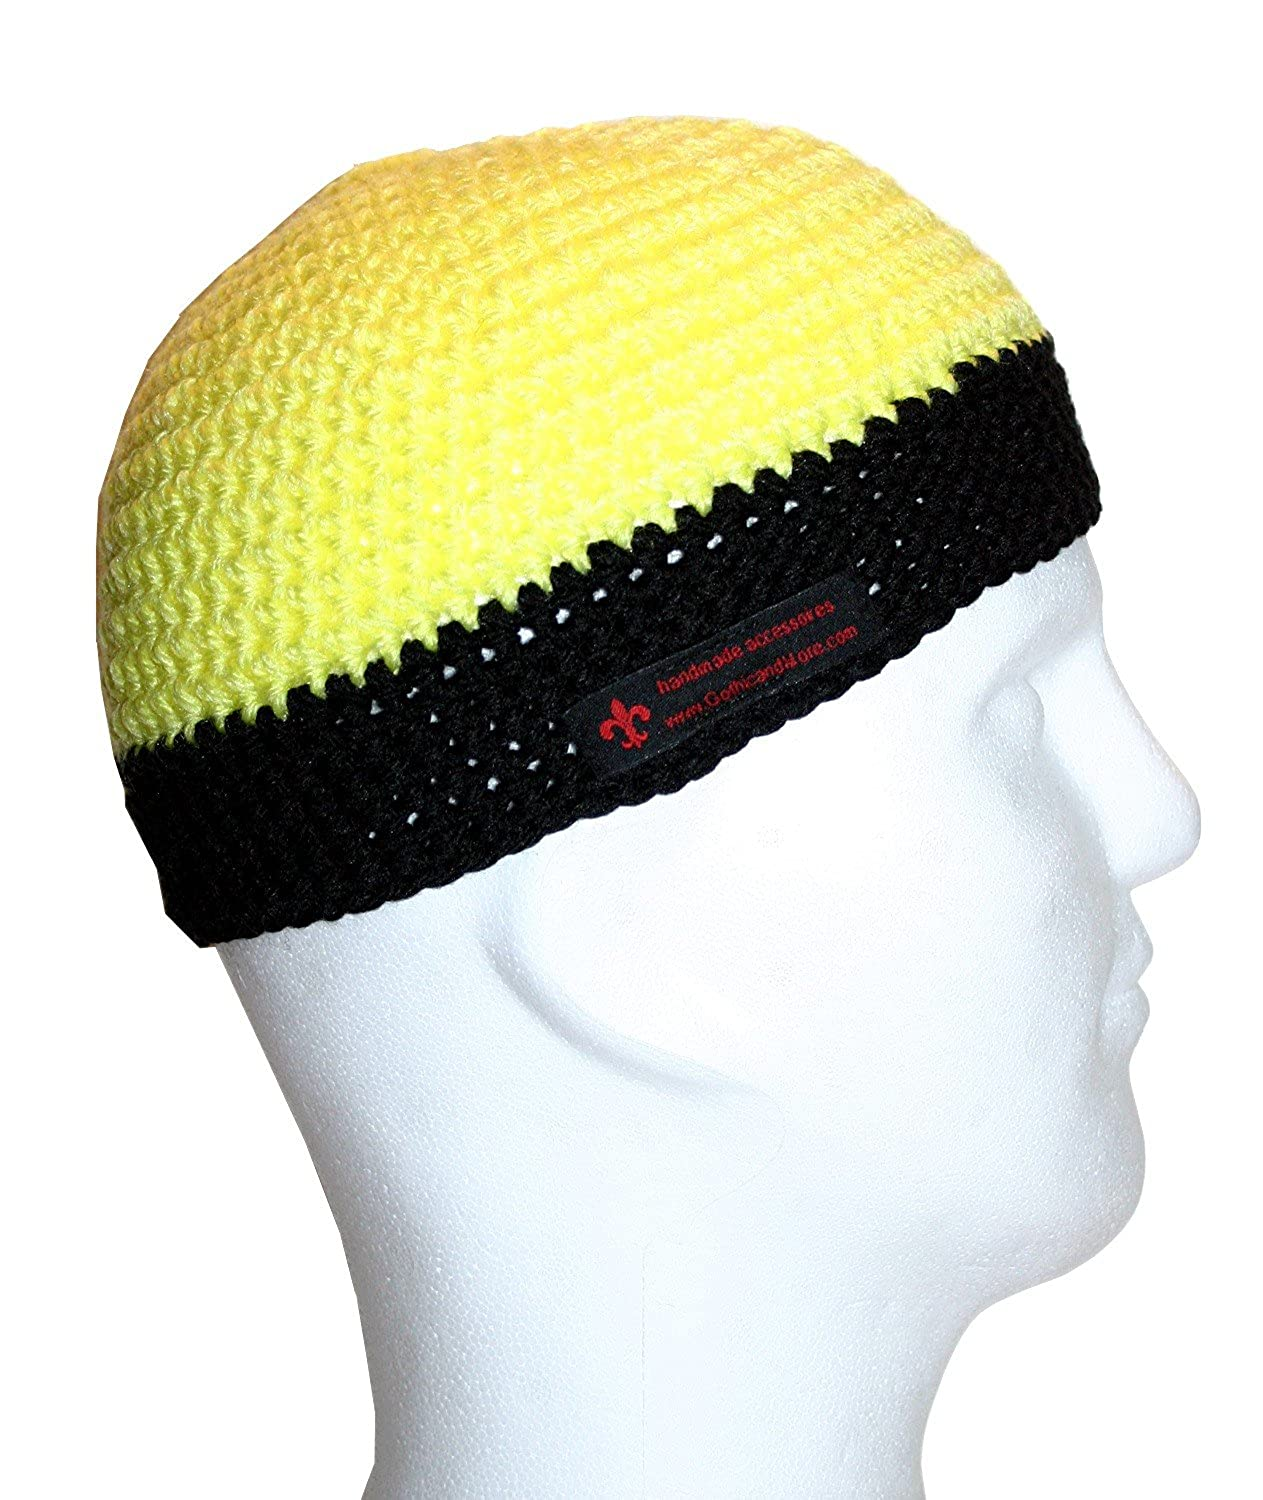 6bc8260fcbc Gothic and More Men s Plain Beanie Yellow Neon Gelb